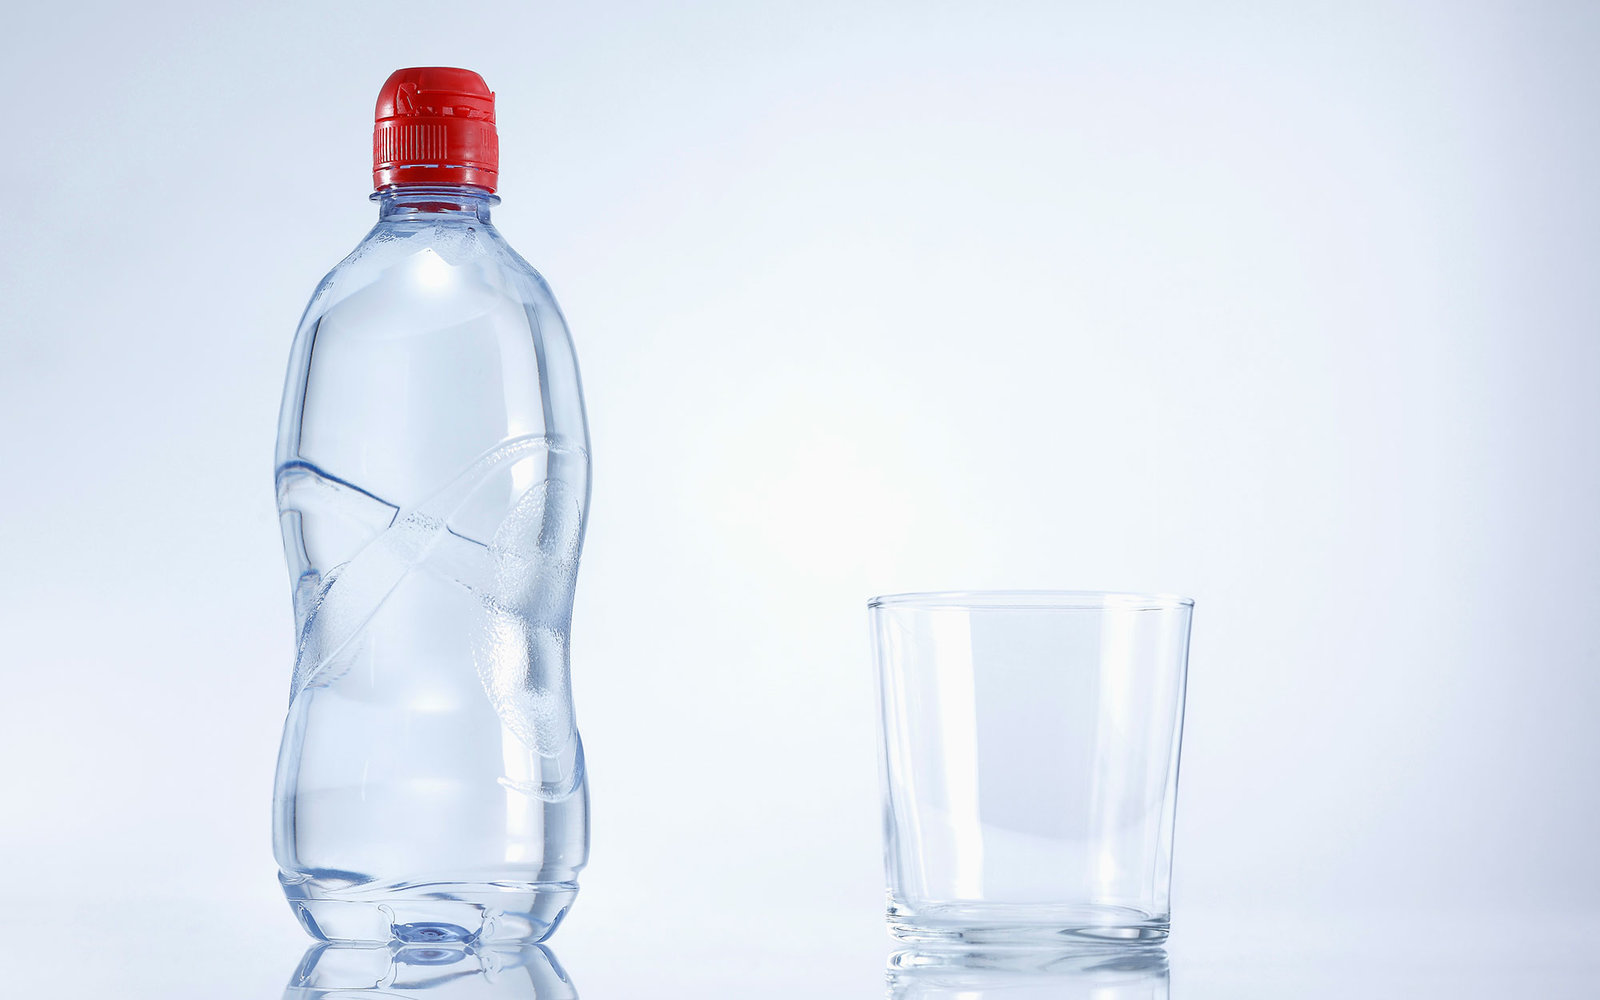 Plastic bottle of mineral water with glass, close up